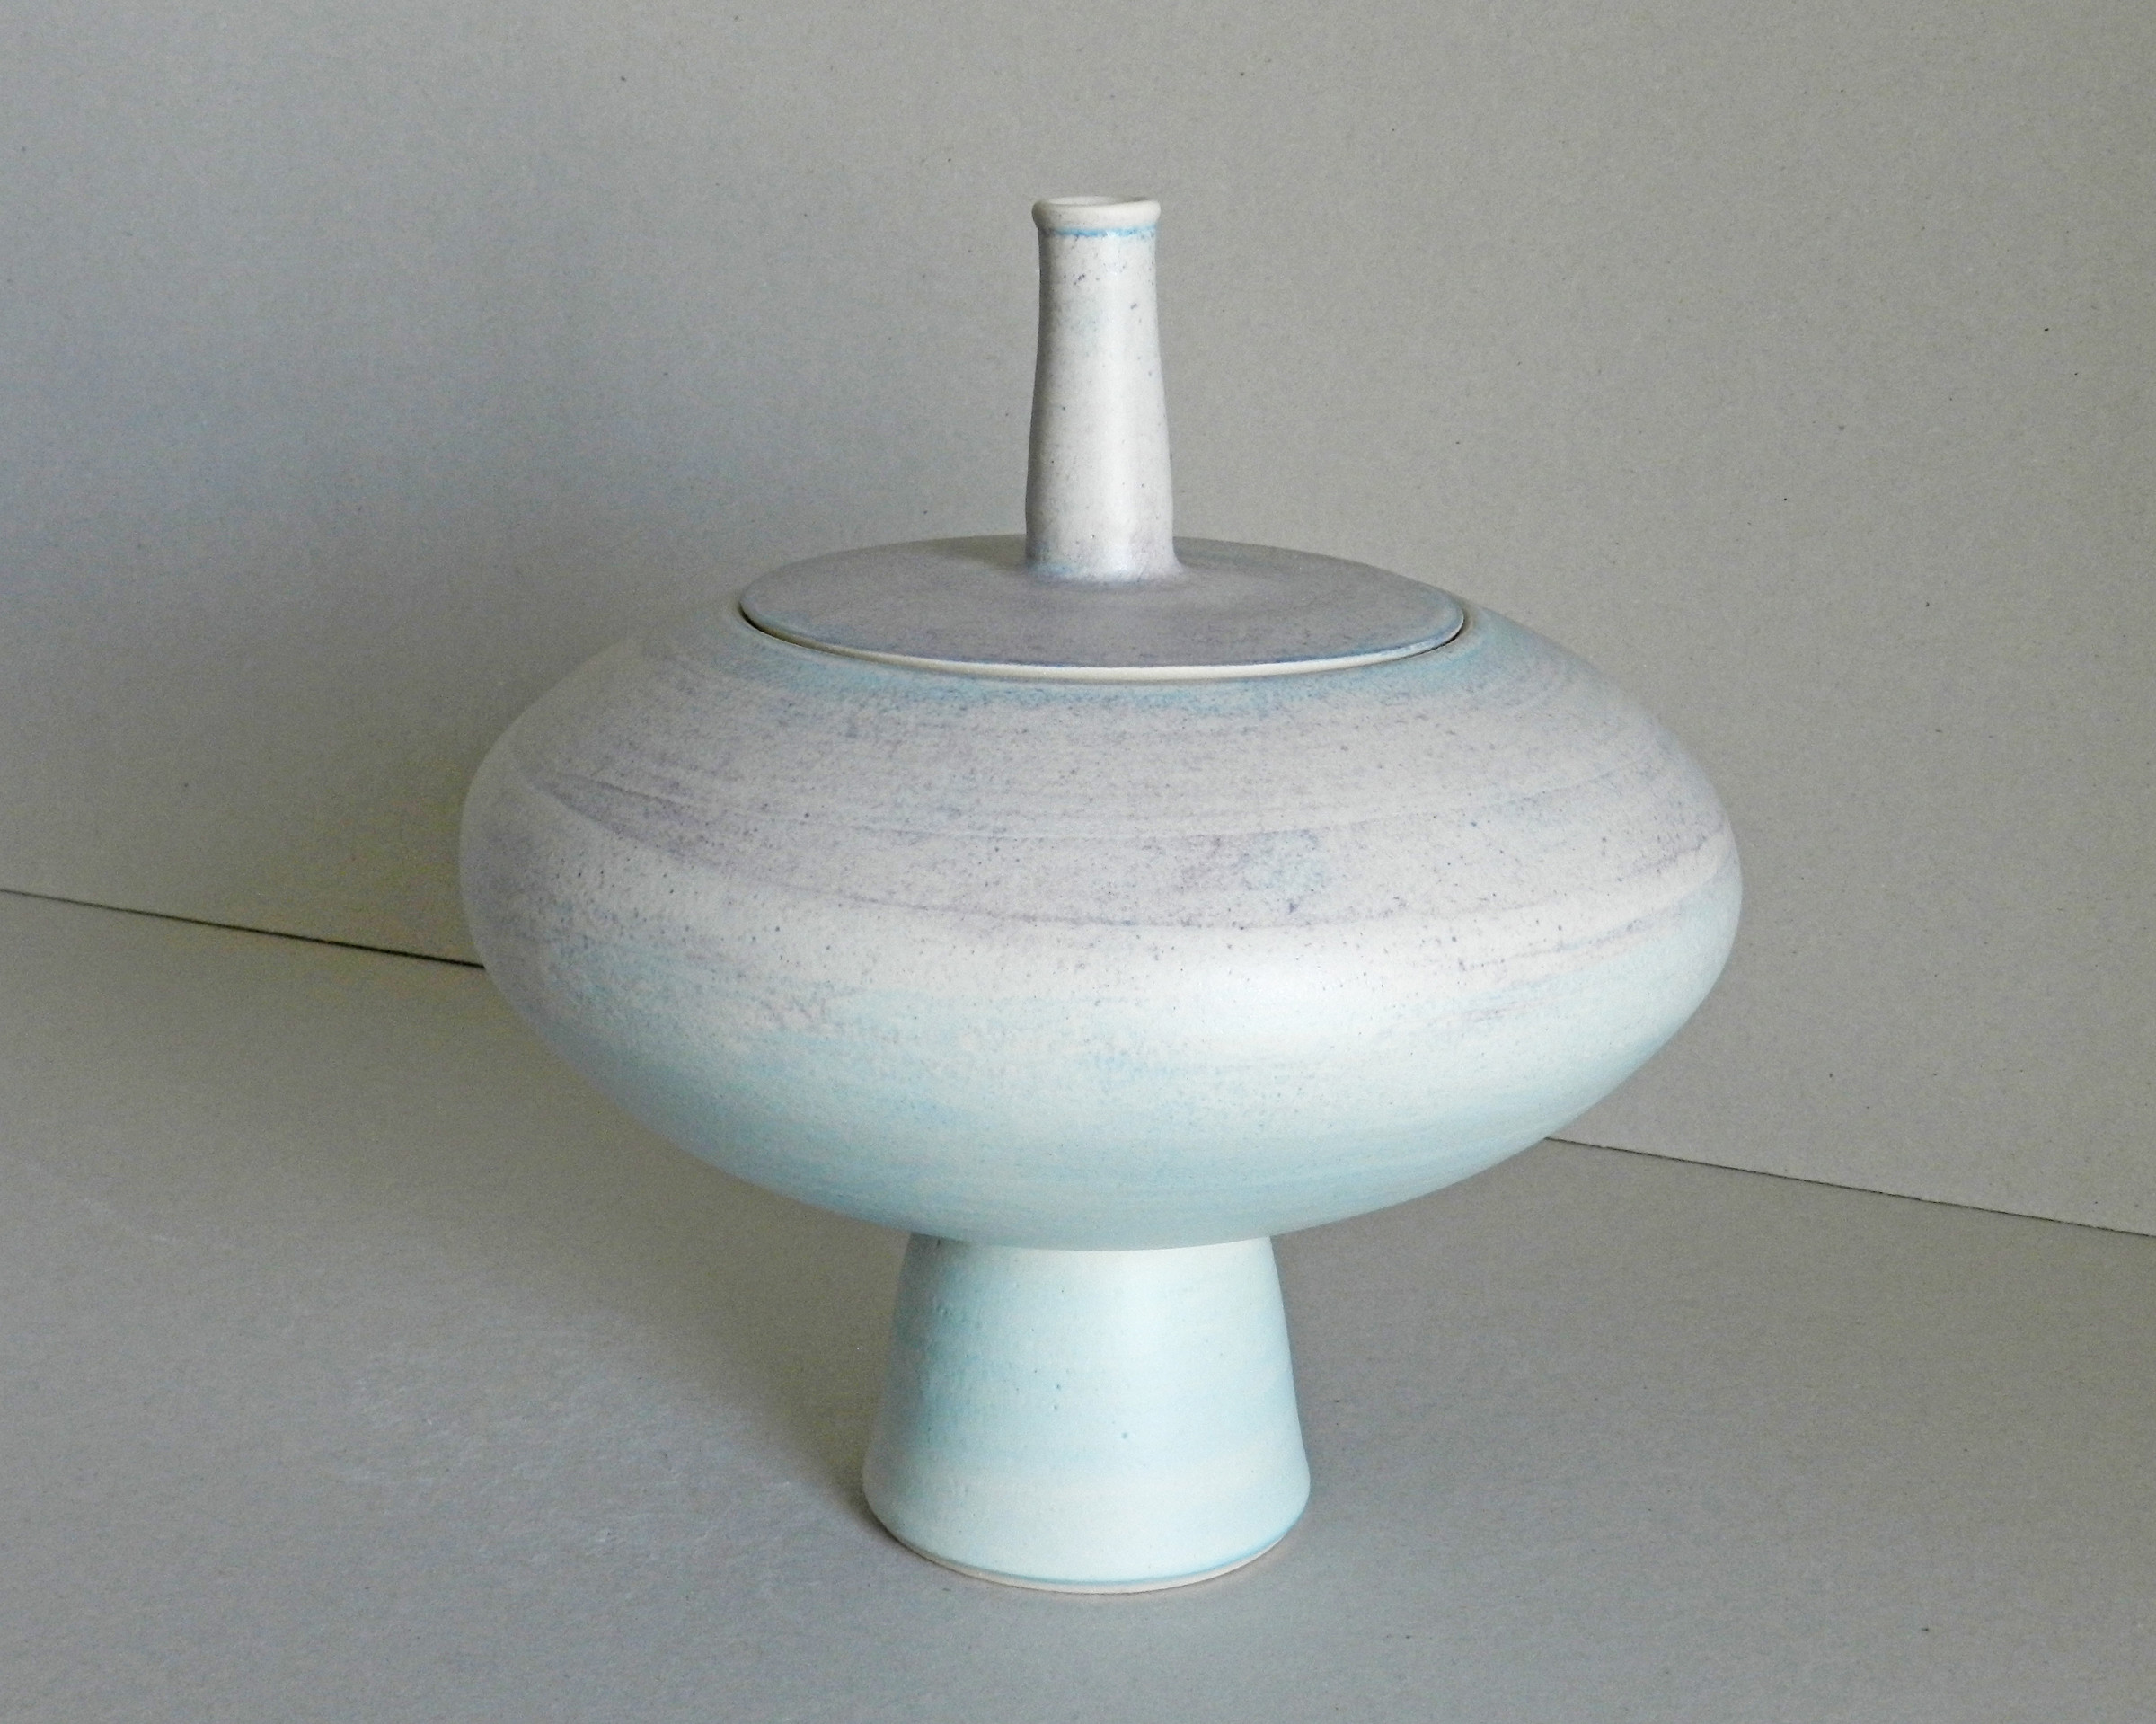 "<span class=""link fancybox-details-link""><a href=""/artists/243-christine-feiler/works/6868-christine-feiler-lidded-pot-2019/"">View Detail Page</a></span><div class=""artist""><strong>Christine Feiler</strong></div> b. 1948 <div class=""title""><em>Lidded pot</em>, 2019</div> <div class=""signed_and_dated"">Ceramicist mark on base</div> <div class=""medium"">Stoneware with enamels</div><div class=""price"">£320.00</div><div class=""copyright_line"">Copyright The Artist</div>"